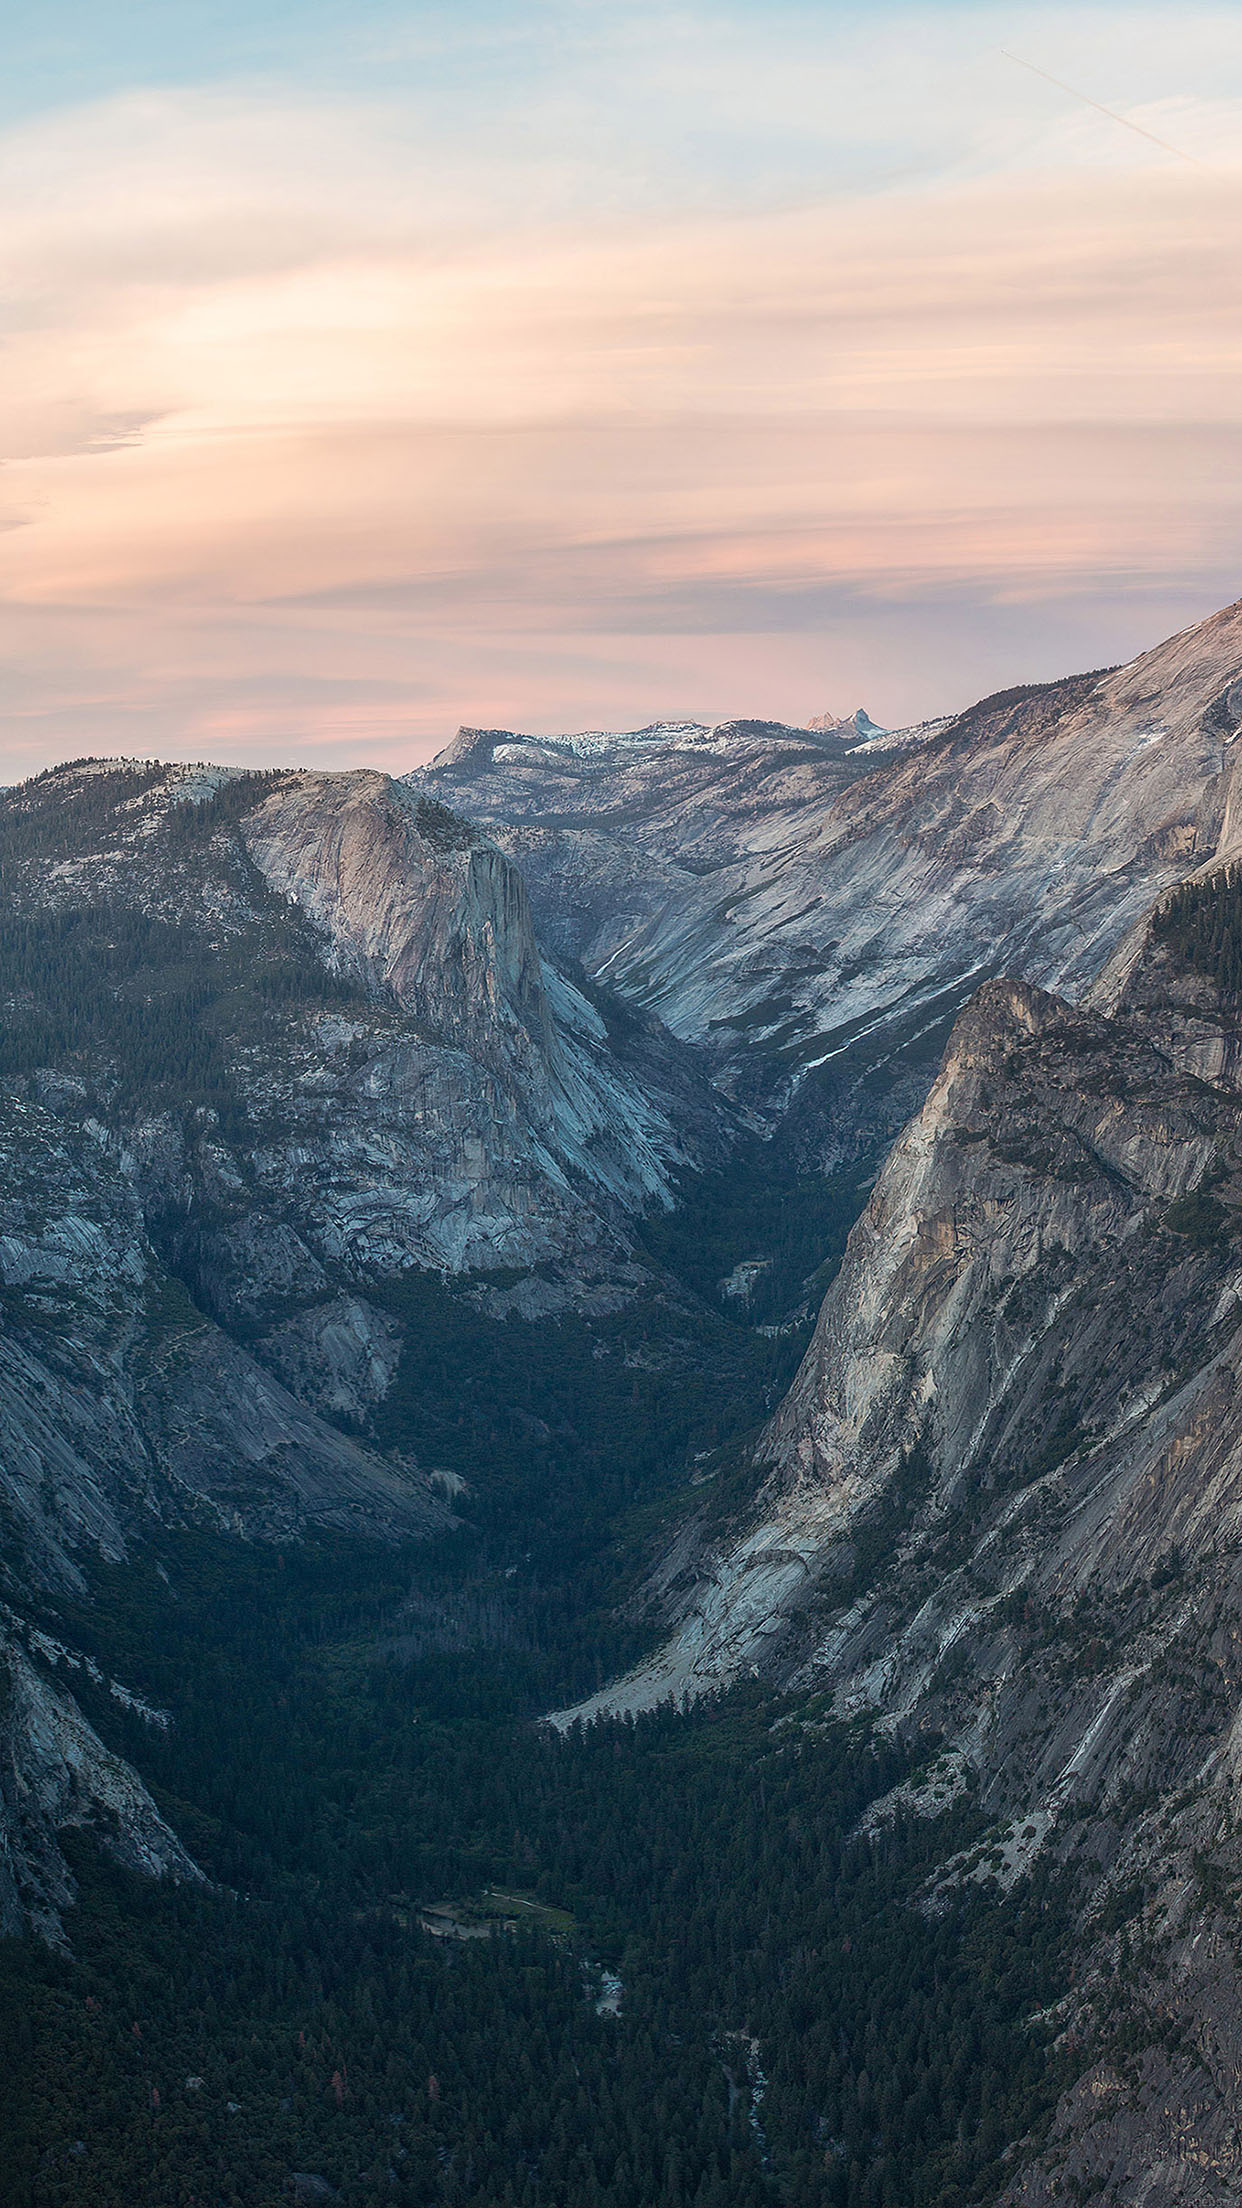 Iphone 6s Wallpaper Fall Yosemite National Park Wallpapers For Iphone And Ipad